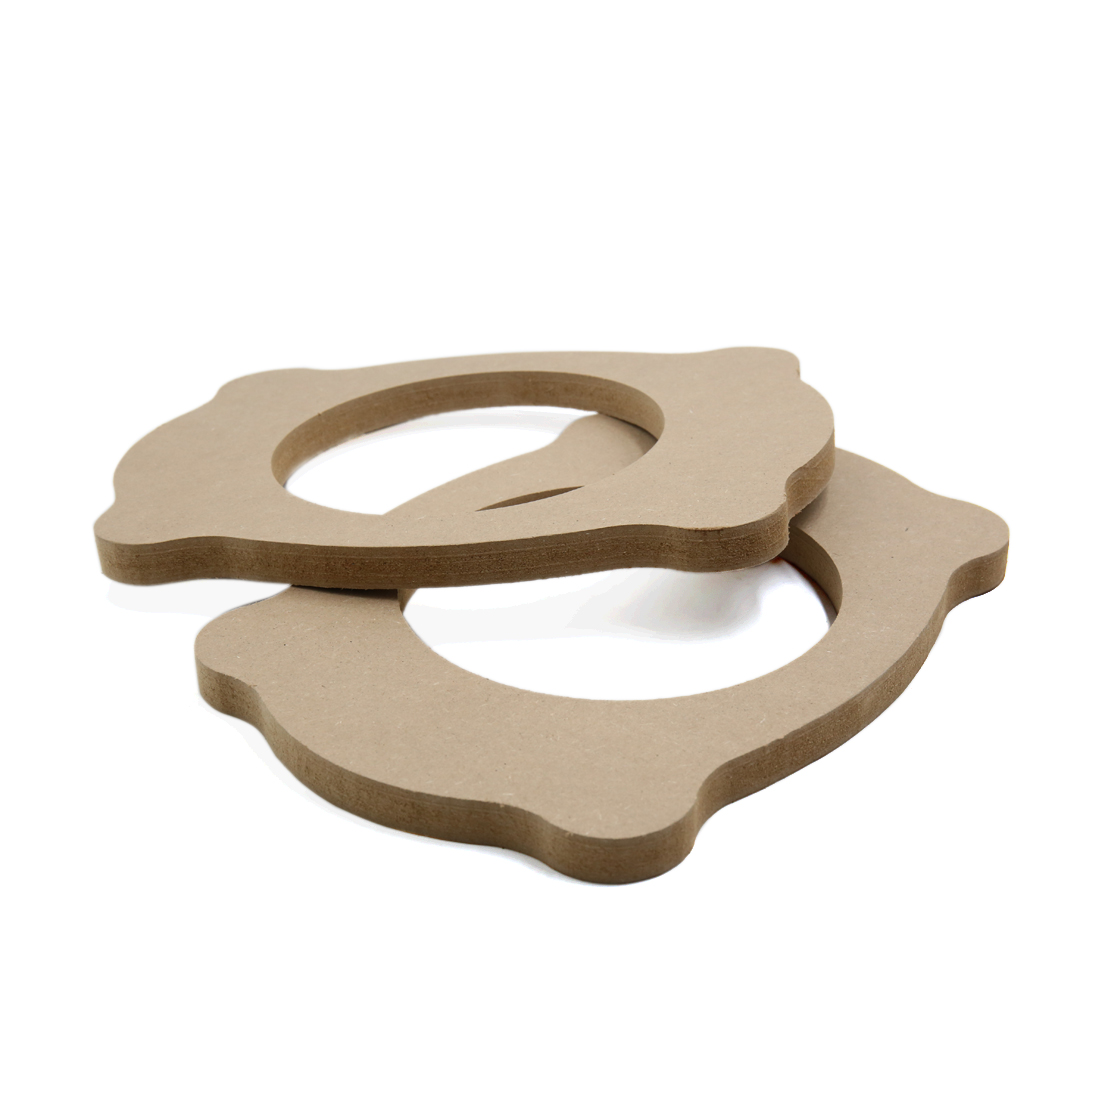 "2Pcs 6.5"" Wooden Car Speaker Spacer Brackets Ring Mounting Adapter Plate"